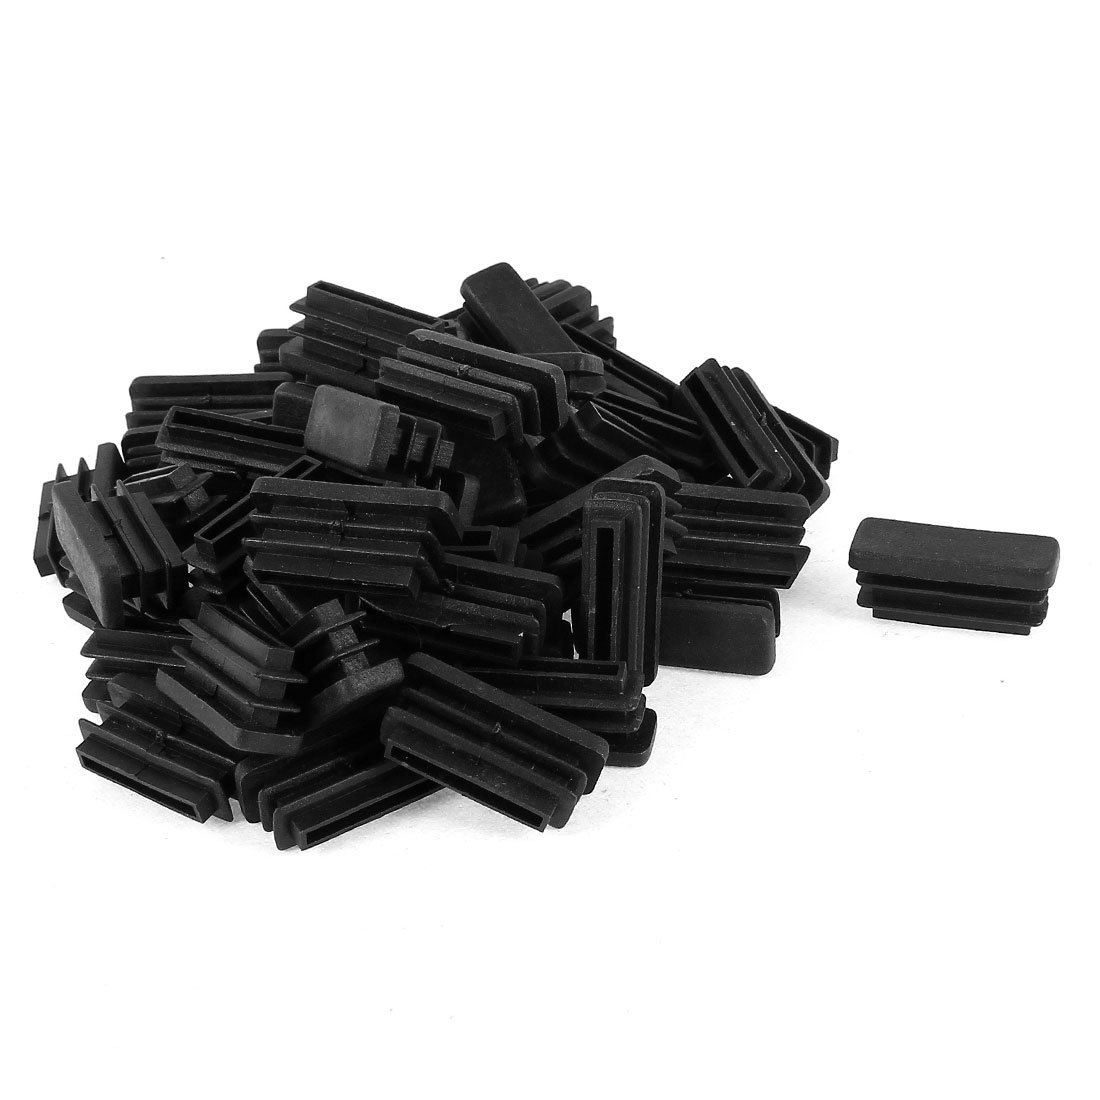 Plastic Rectangle Plug Furniture Tubing Protectors 10mm X 30mm 50 Pcs